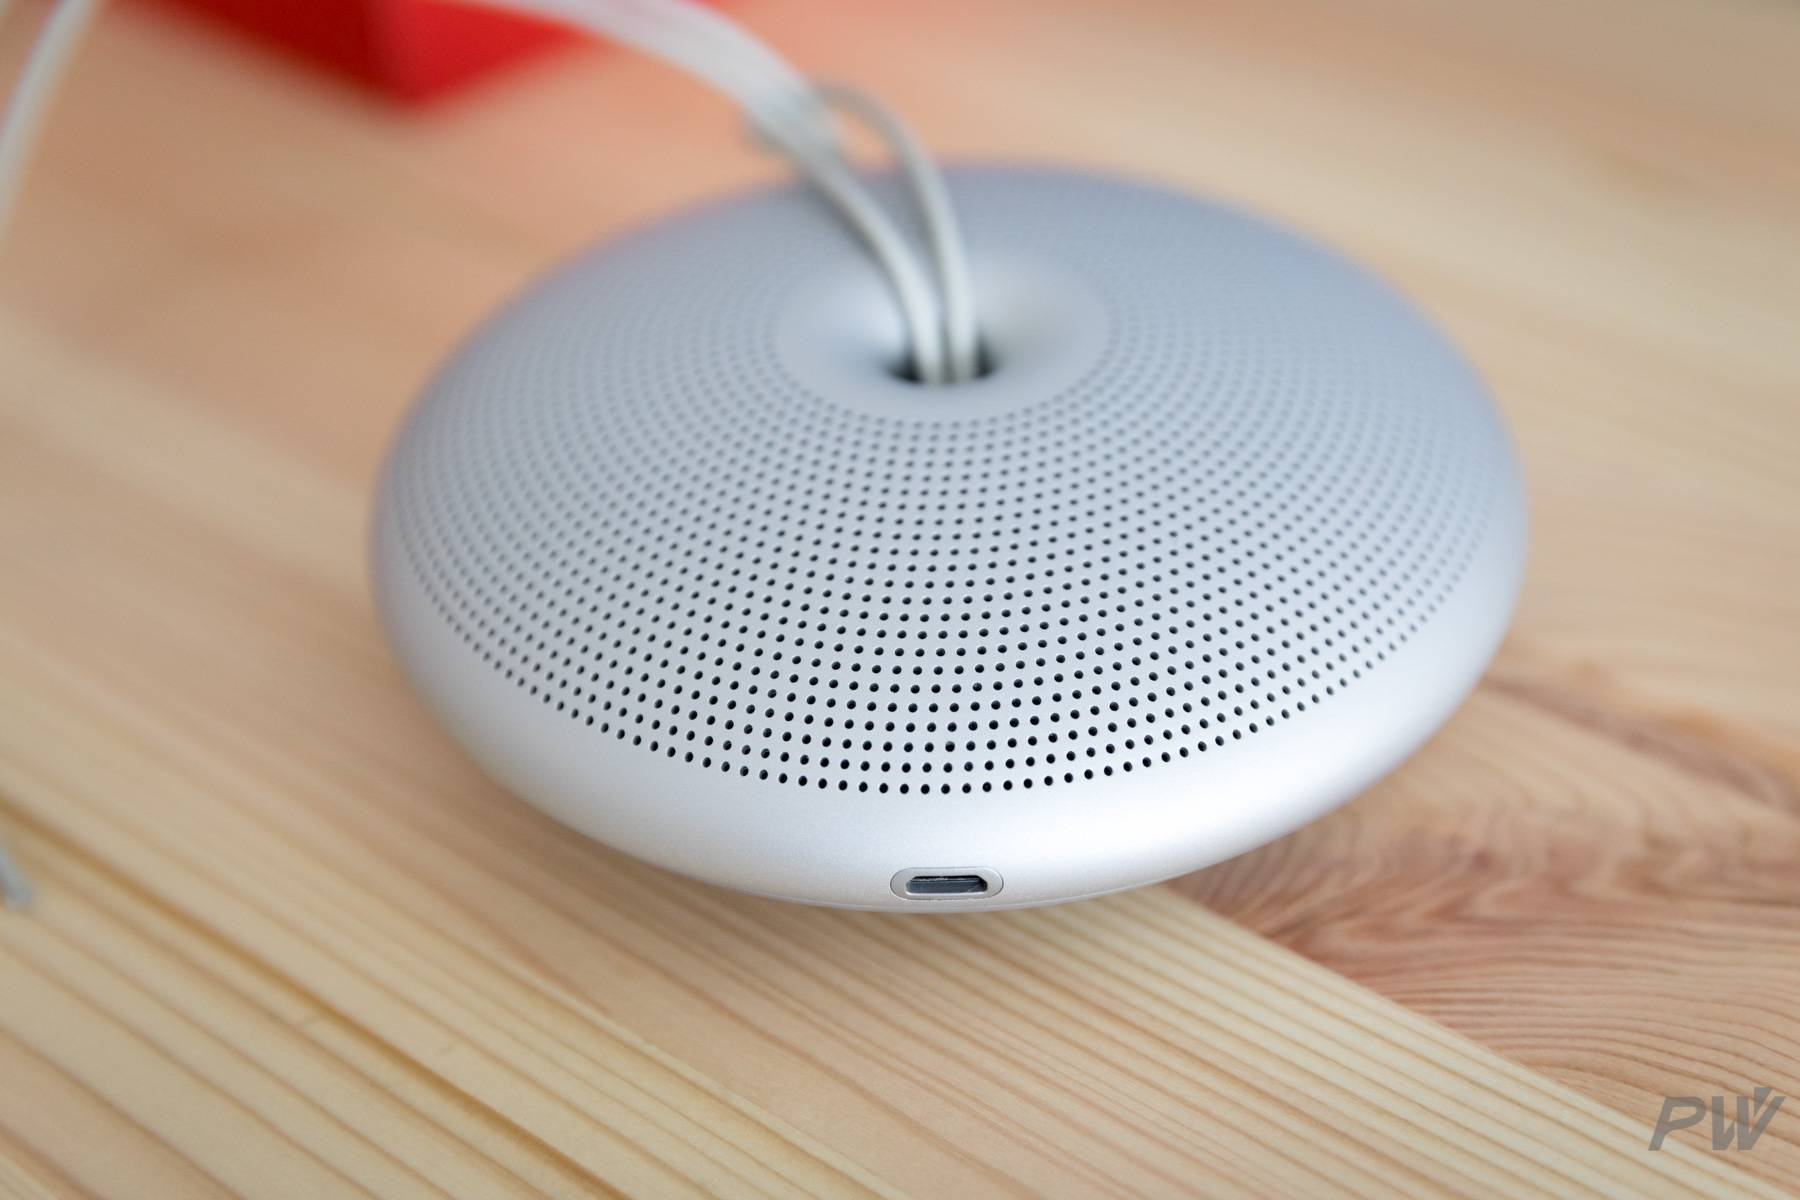 netease music bluetooth speaker Photo by Hao Ying-19